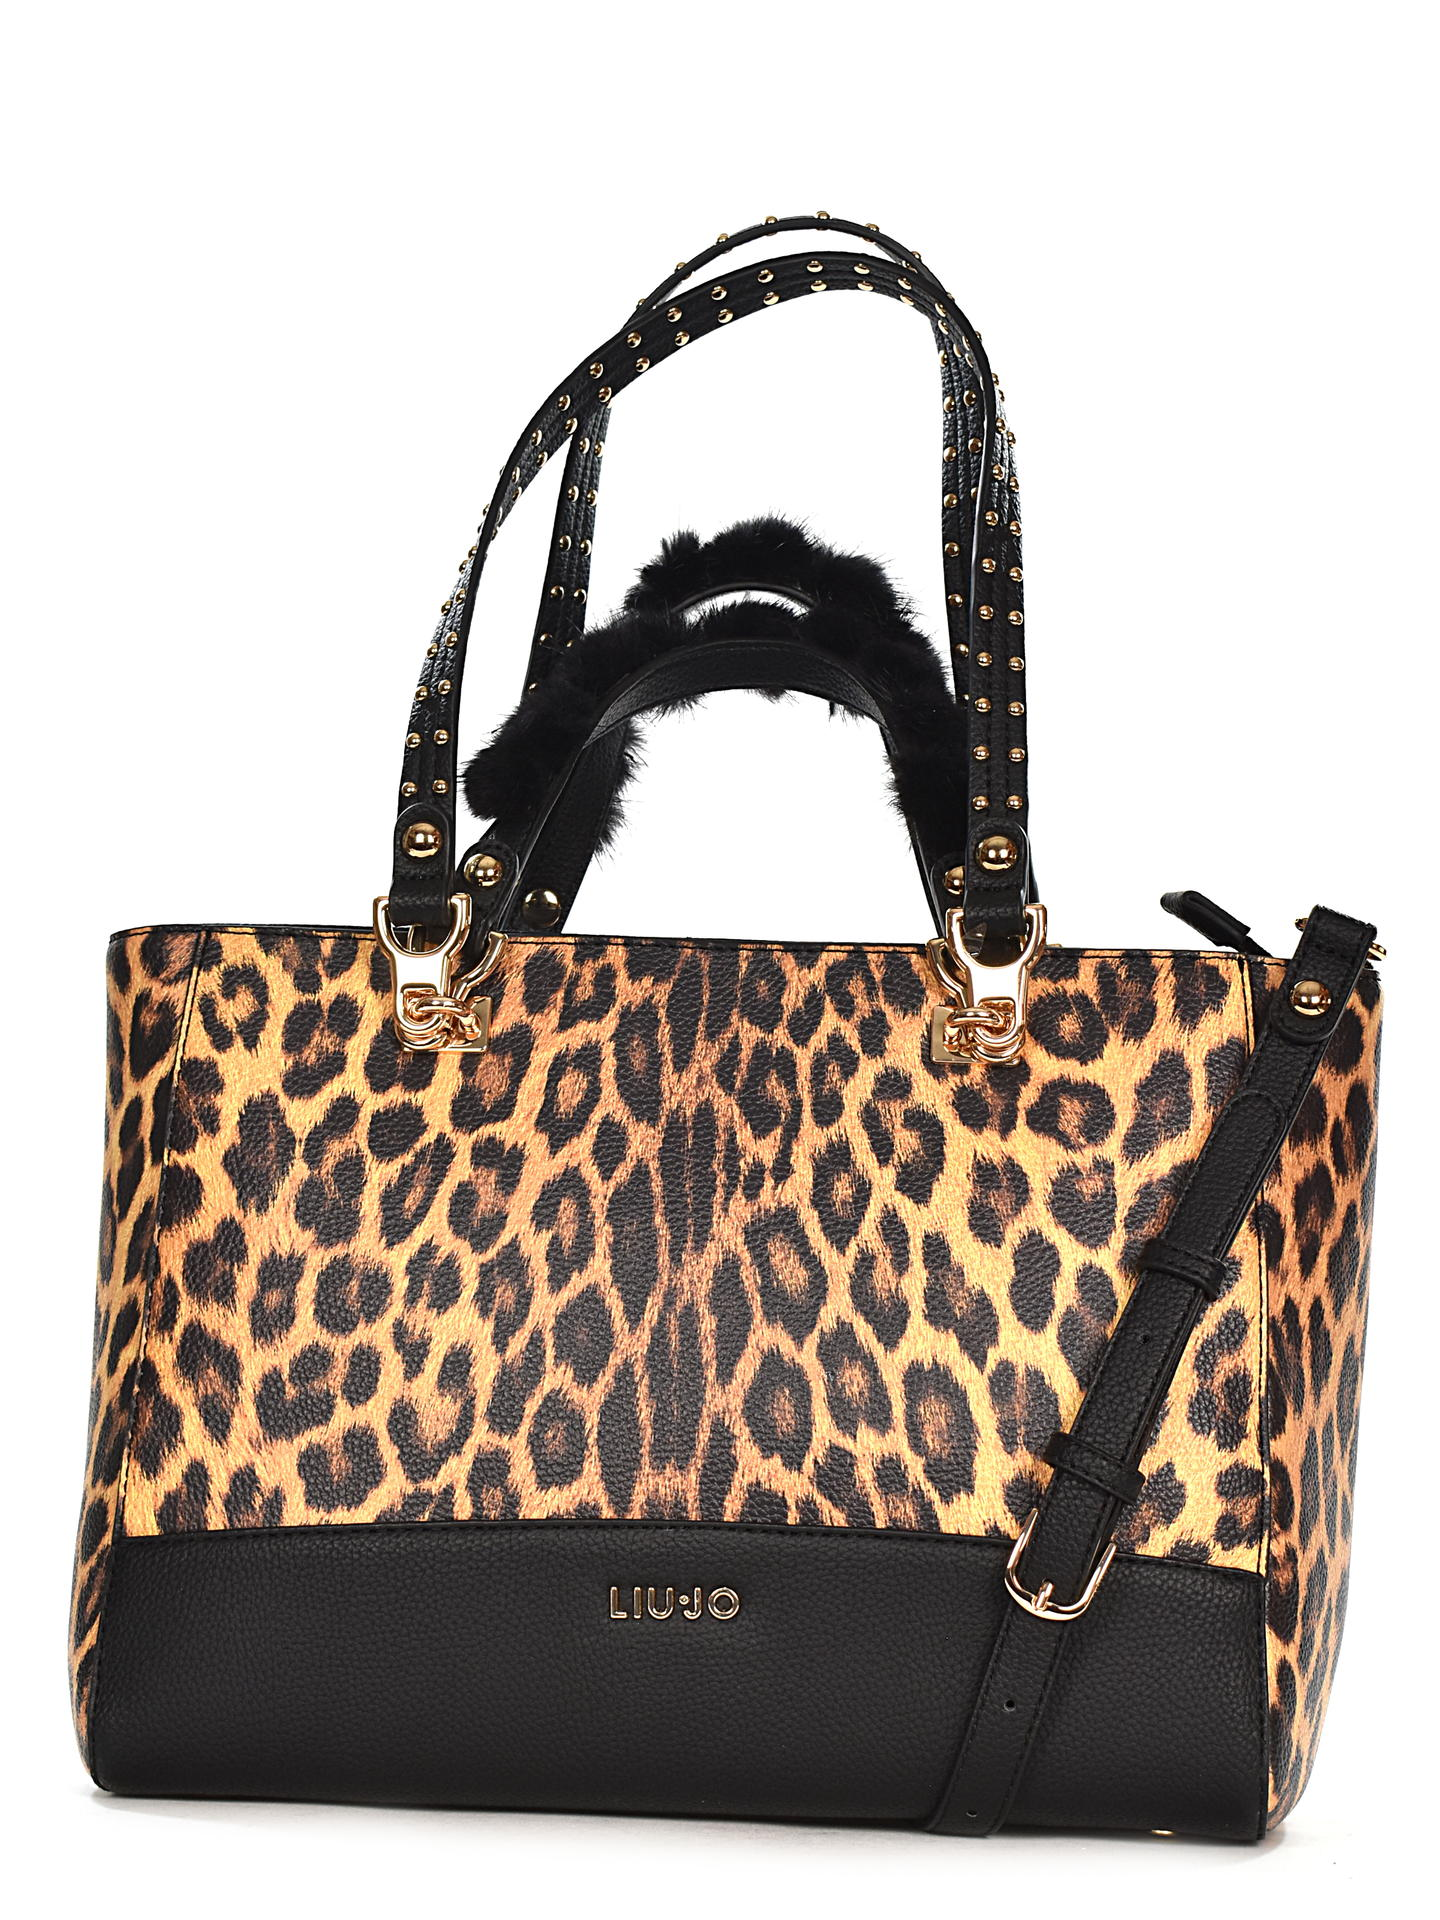 BORSA LIU.JO BAGS A69092 NERO | DESIDERIO COLLECTION